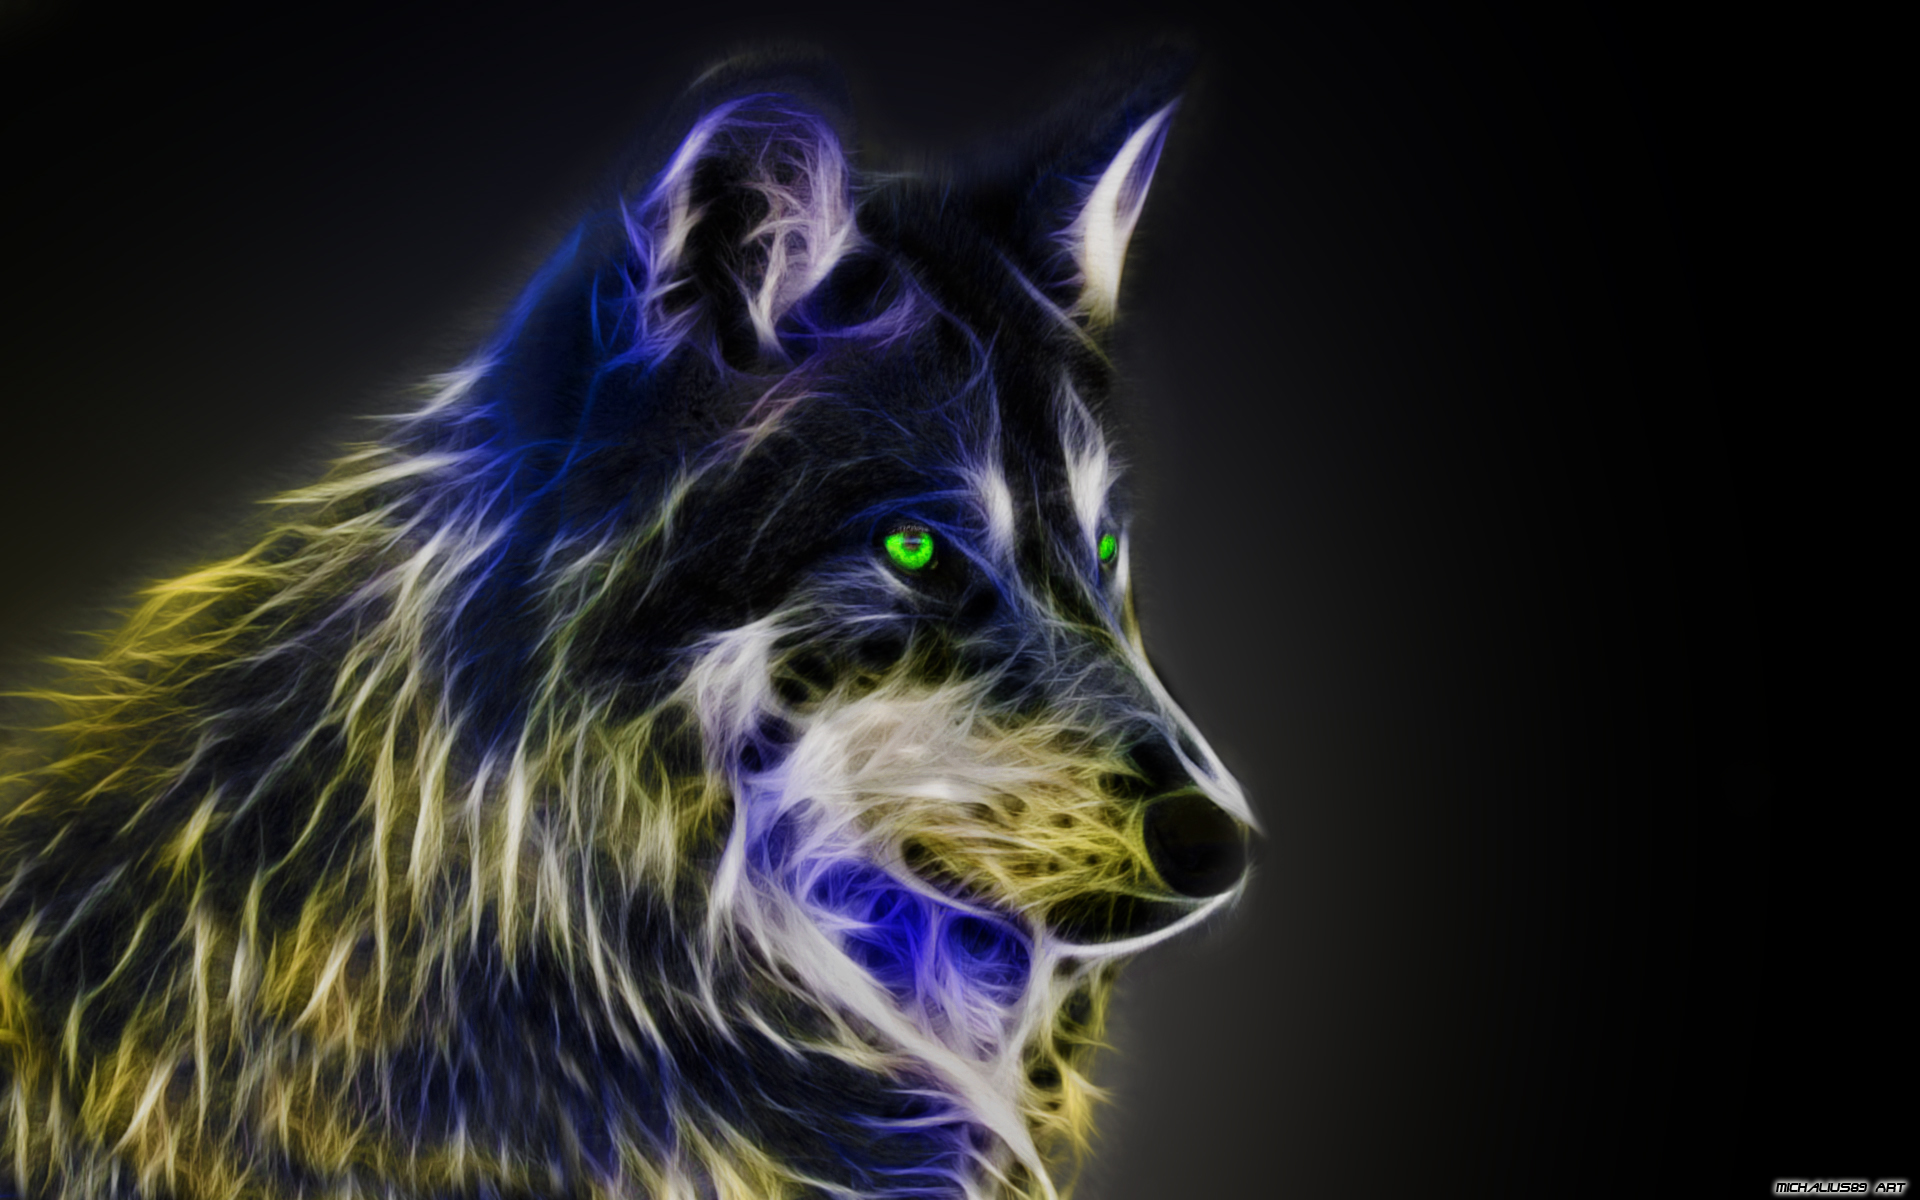 Free Download Cool Wolf Wallpaper Light Fractal Wolfby Michalius89 1920x1200 For Your Desktop Mobile Tablet Explore 49 Cool Pictures Of Wolves Wallpapers Cool Wolf Wallpapers Wolf Images Free Wallpaper